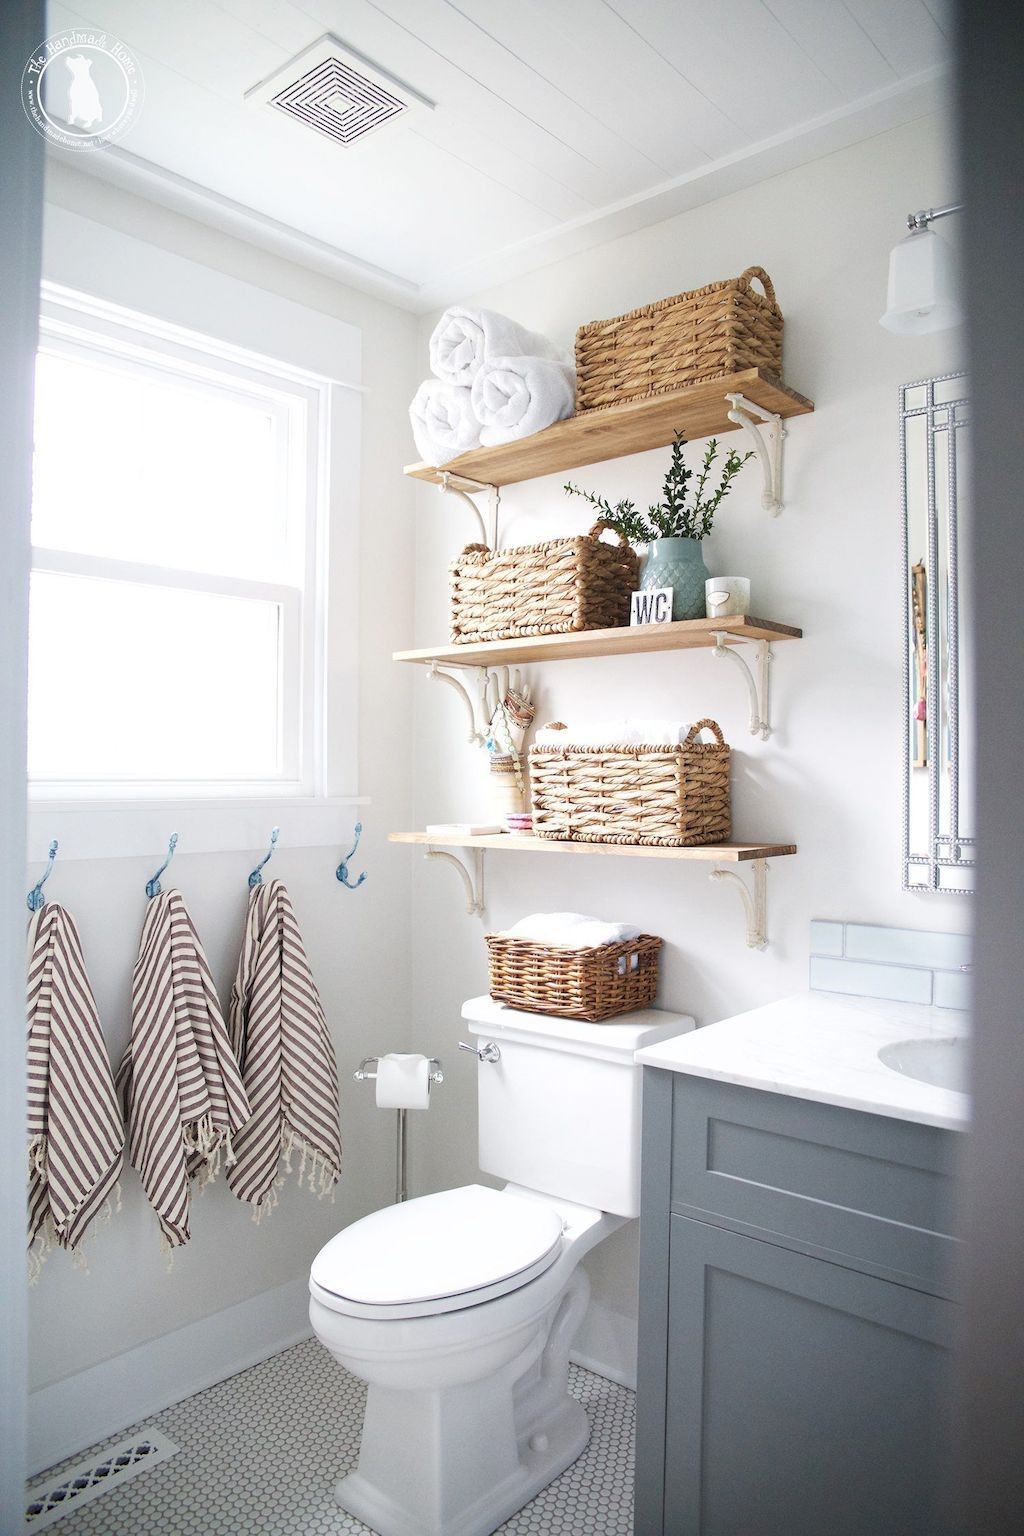 7 Open Shelves and Wicker Baskets via simphome